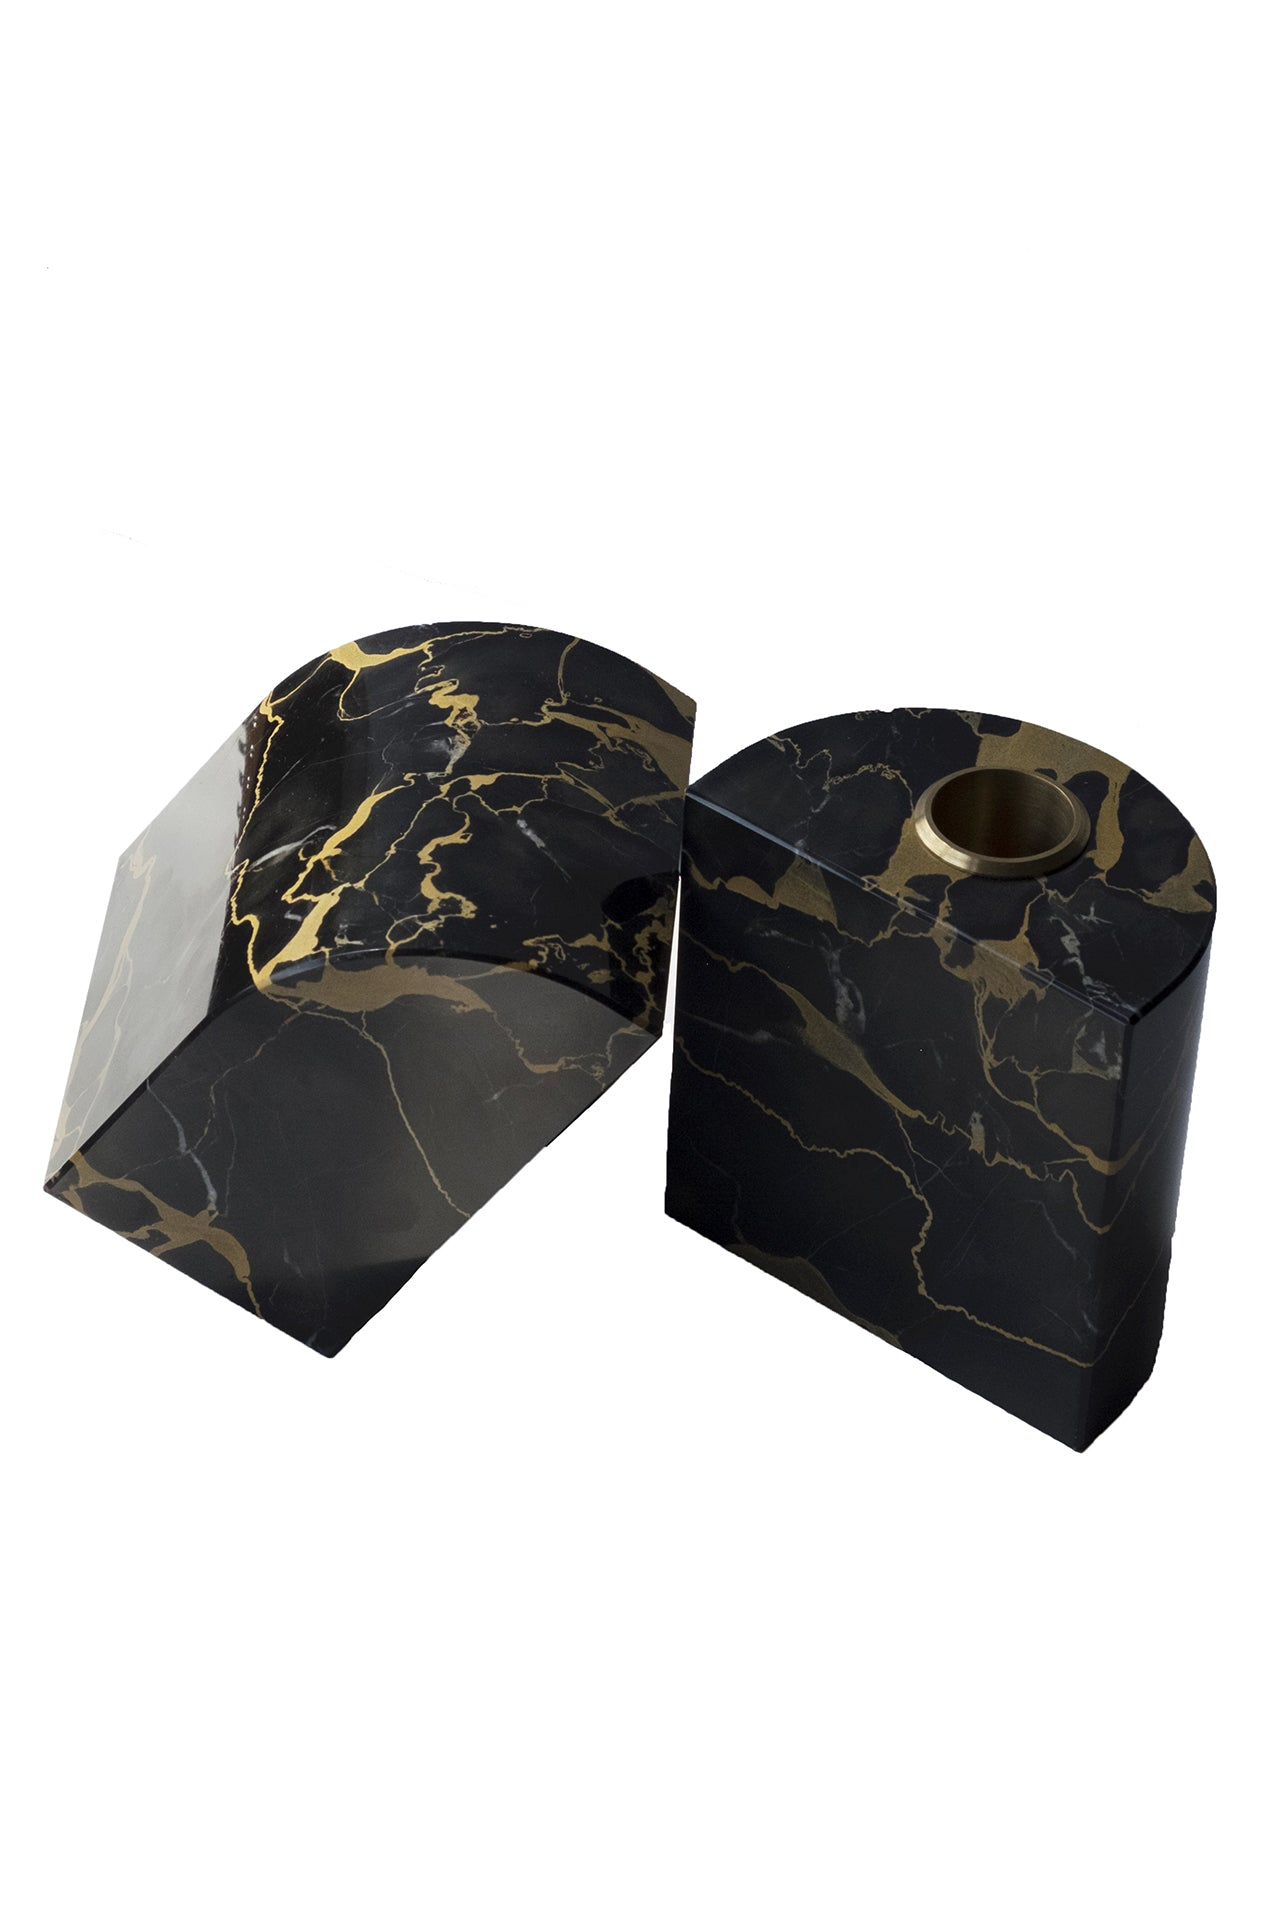 Marble Bookends in Black